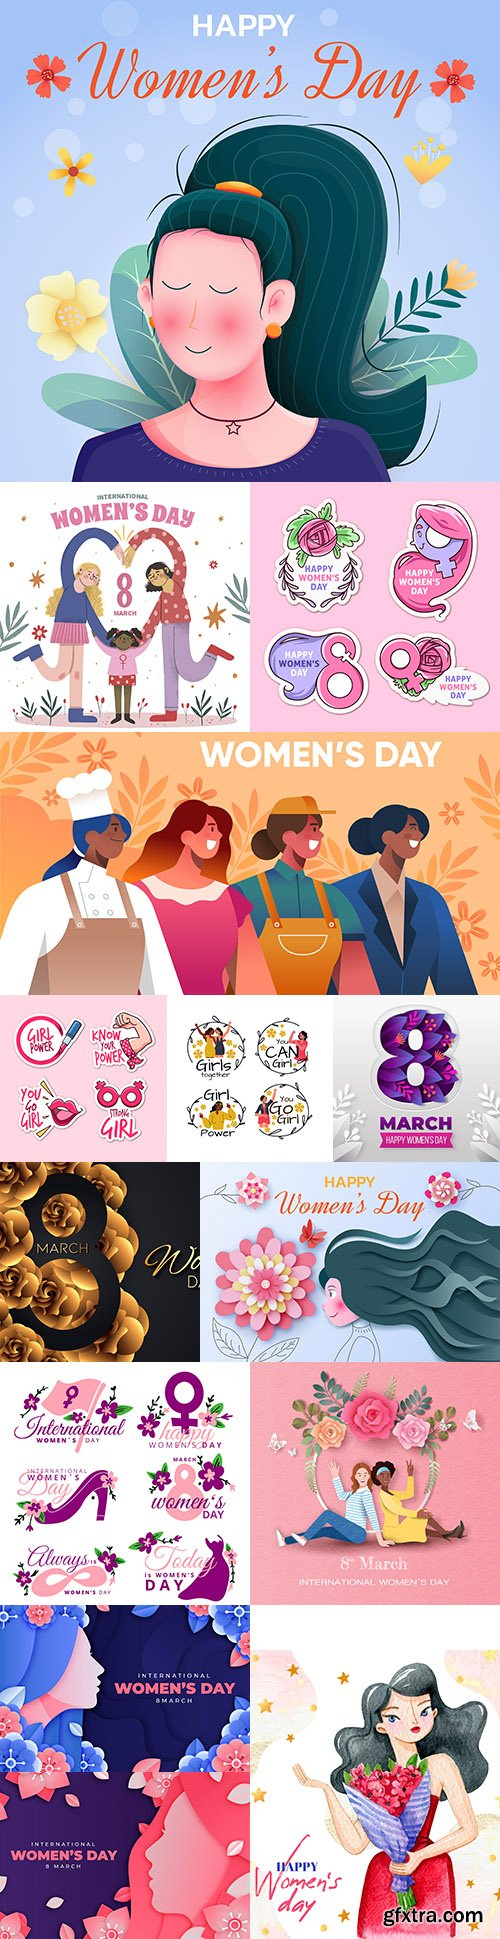 Happy Women's Day March 8 painted illustrations 3